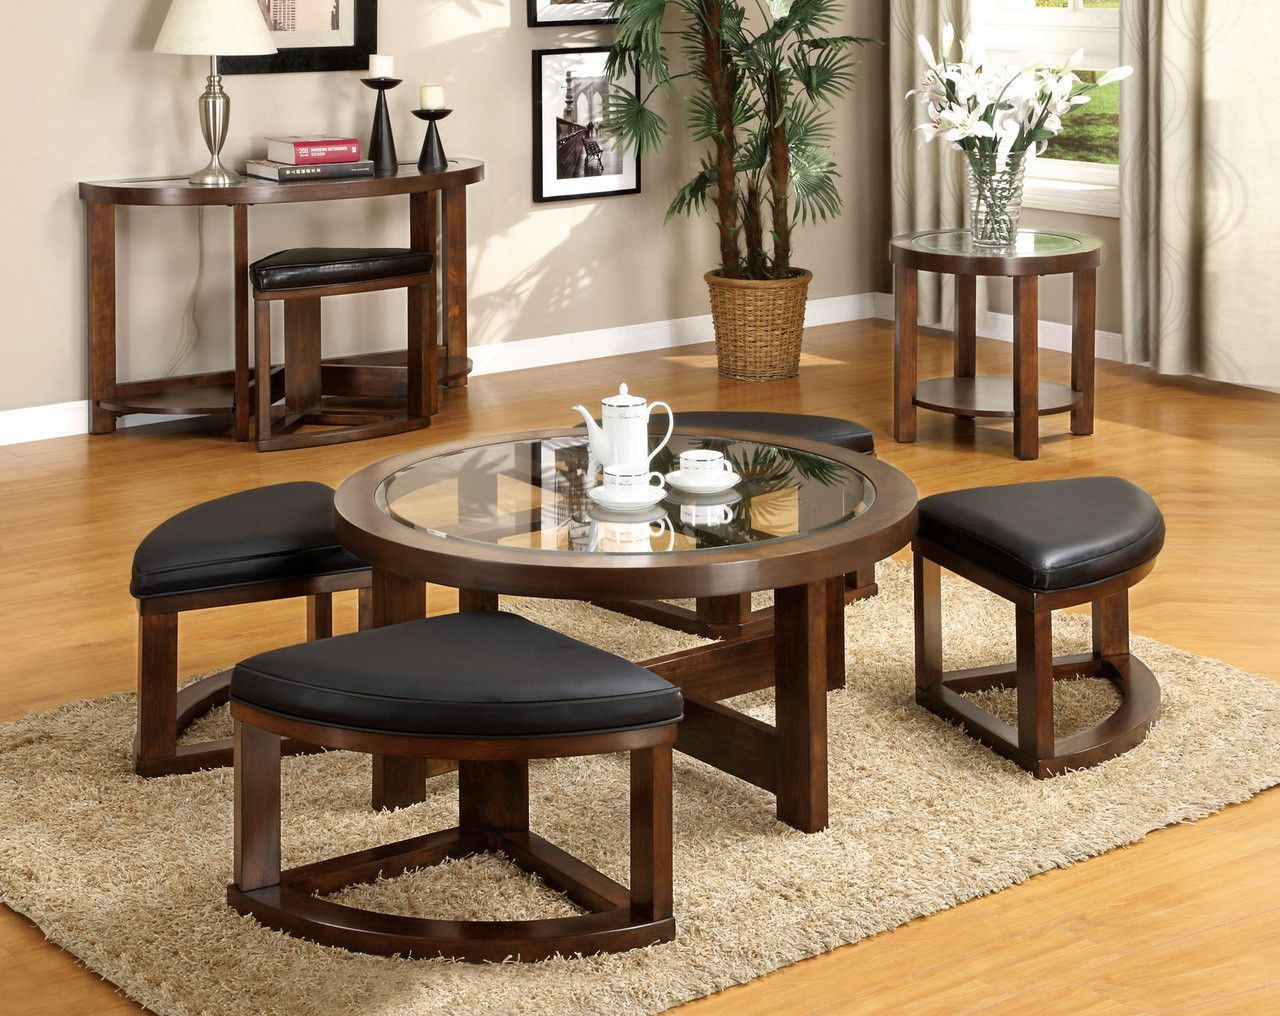 End Table Cm4321re Round Wooden Coffee Table Coffee Table Coffee Table With Seating [ 1016 x 1280 Pixel ]